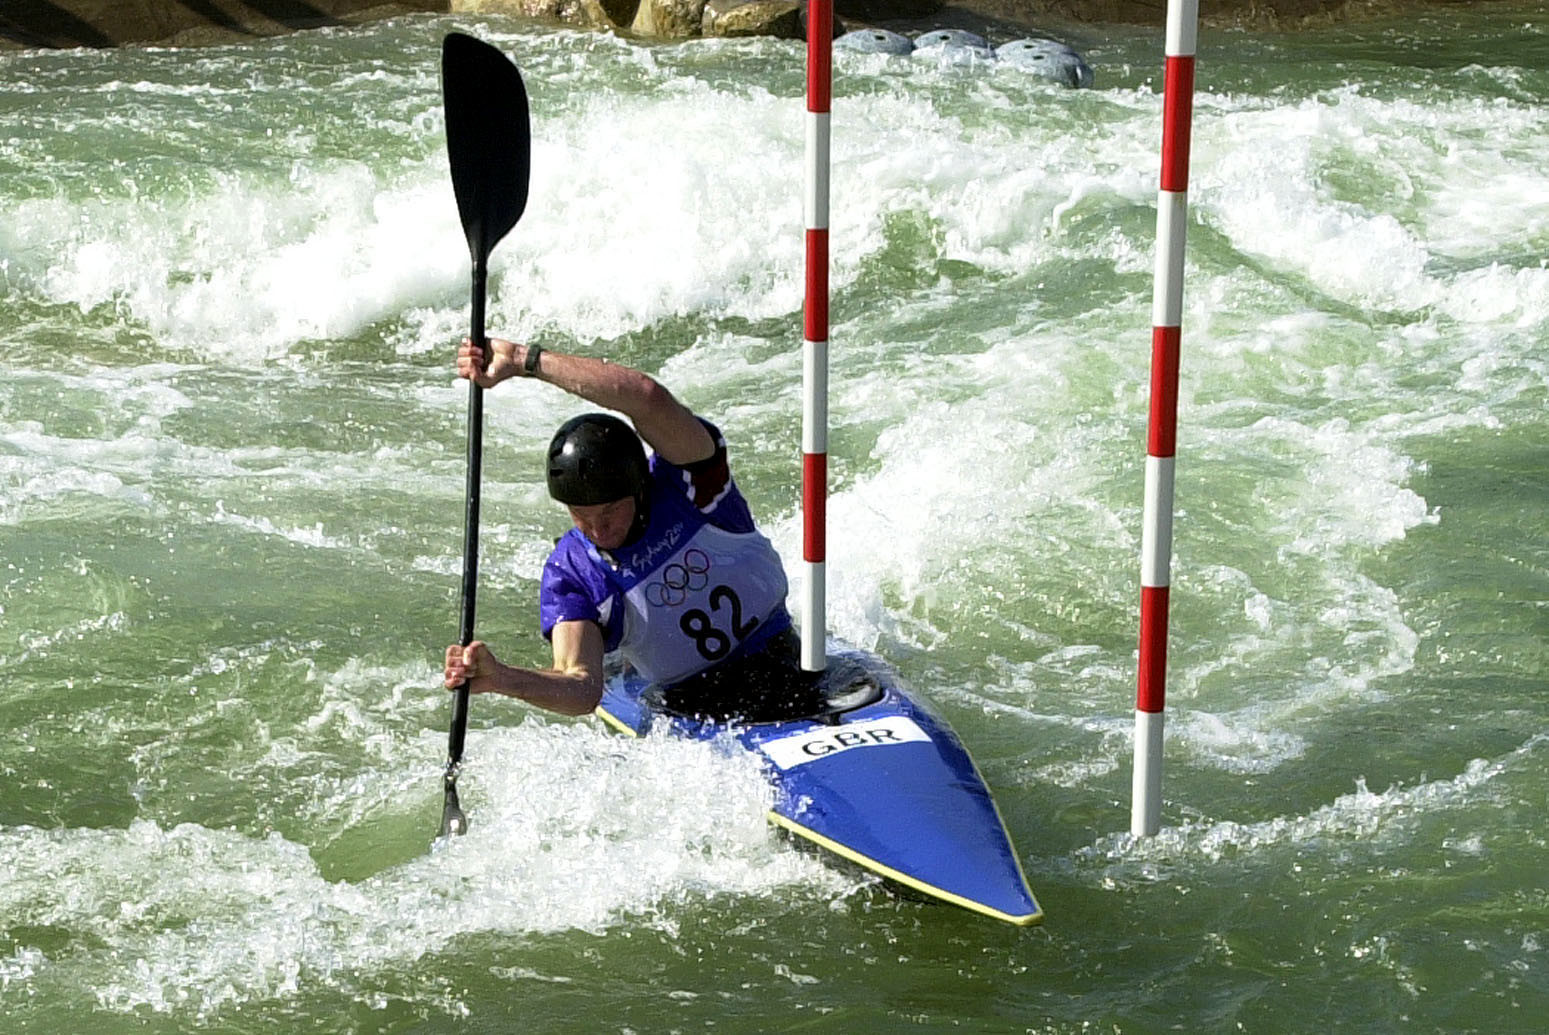 Penrith Whitewater Stadium hosted the canoe slalom contest at the Sydney 2000 Olympic Games ©Getty Images